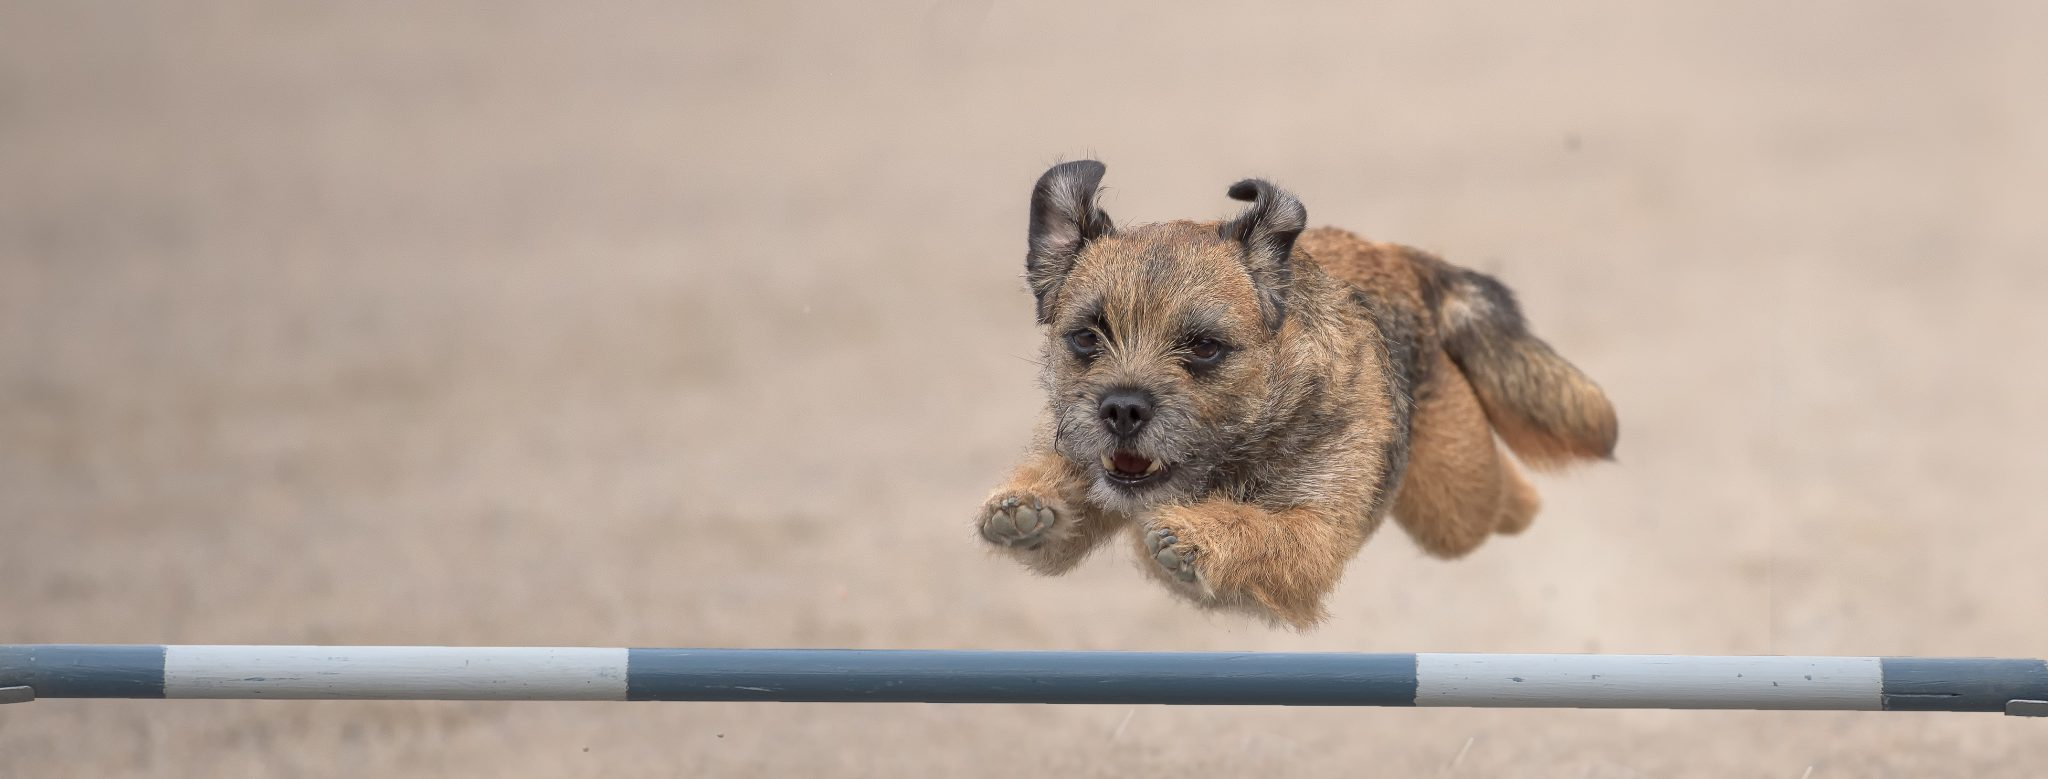 Activities With Your Dog {Activities} #Agility #Activities #Crufts #Exercise #DogTraining #DogActivity www.scruffylittleterrier.com